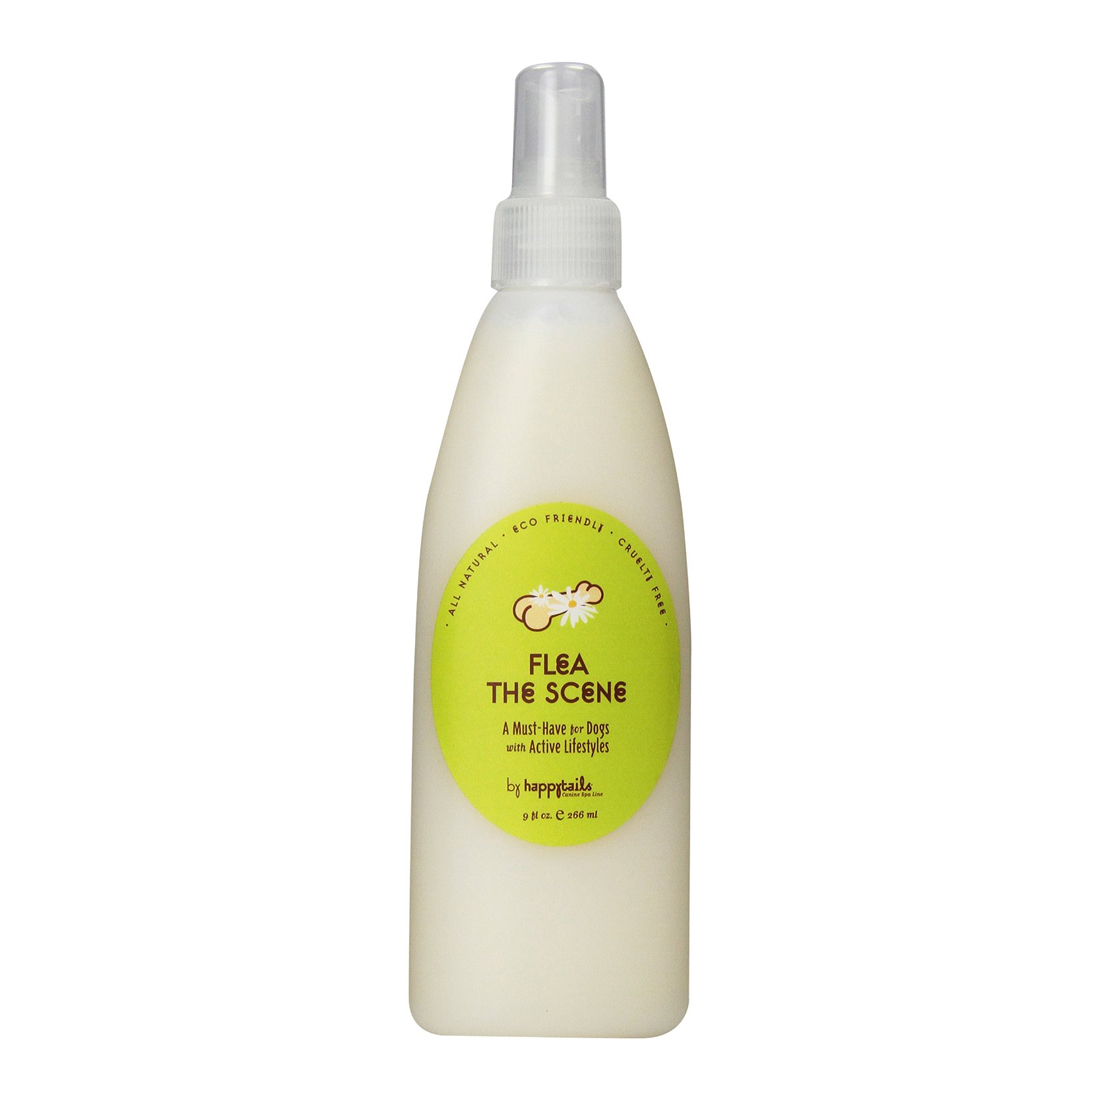 HappyTails Flea the Scene - 3in1 Insect Spray 7 oz